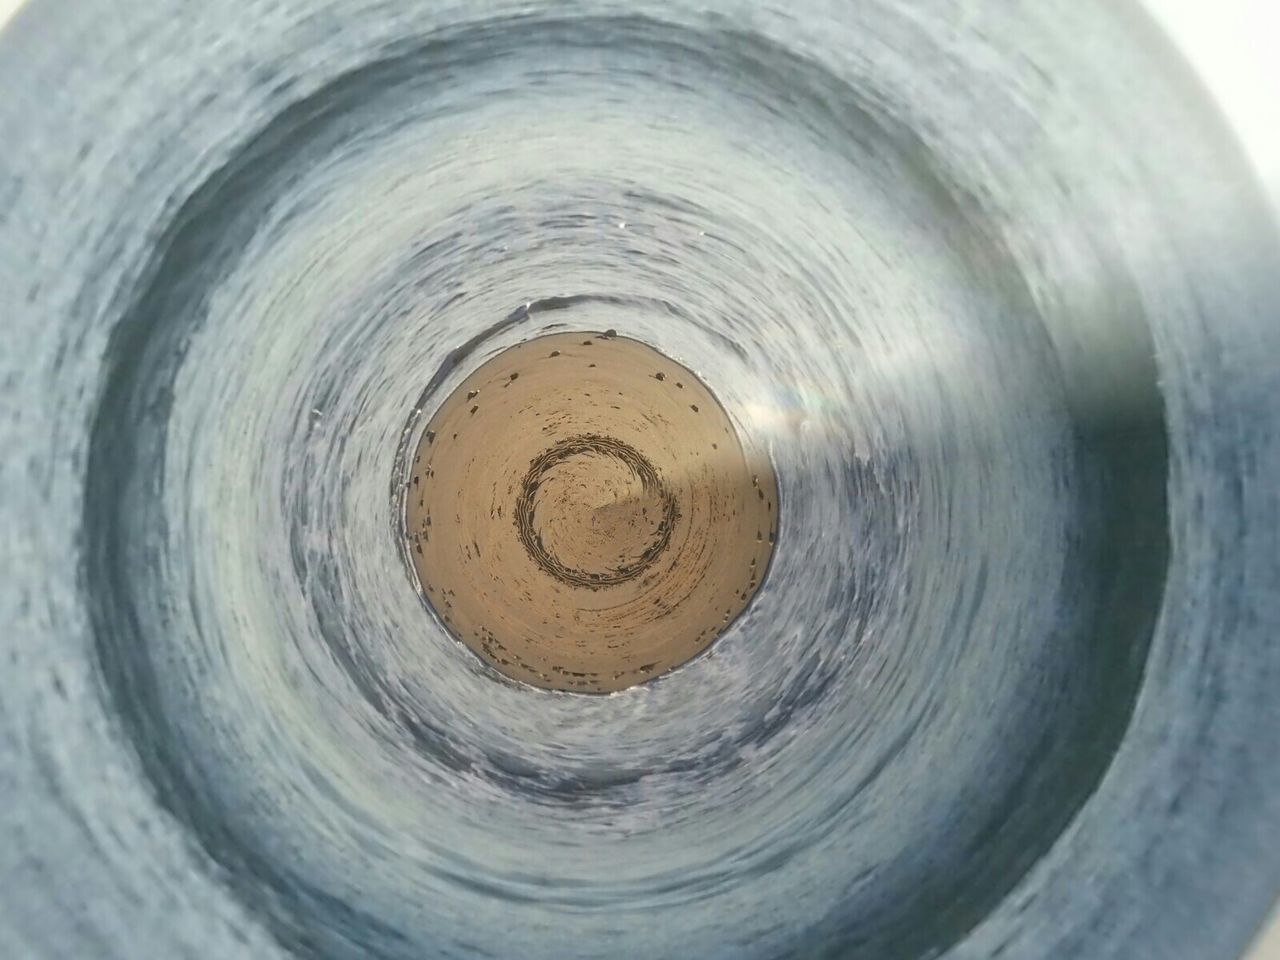 circle, water, close-up, no people, concentric, indoors, day